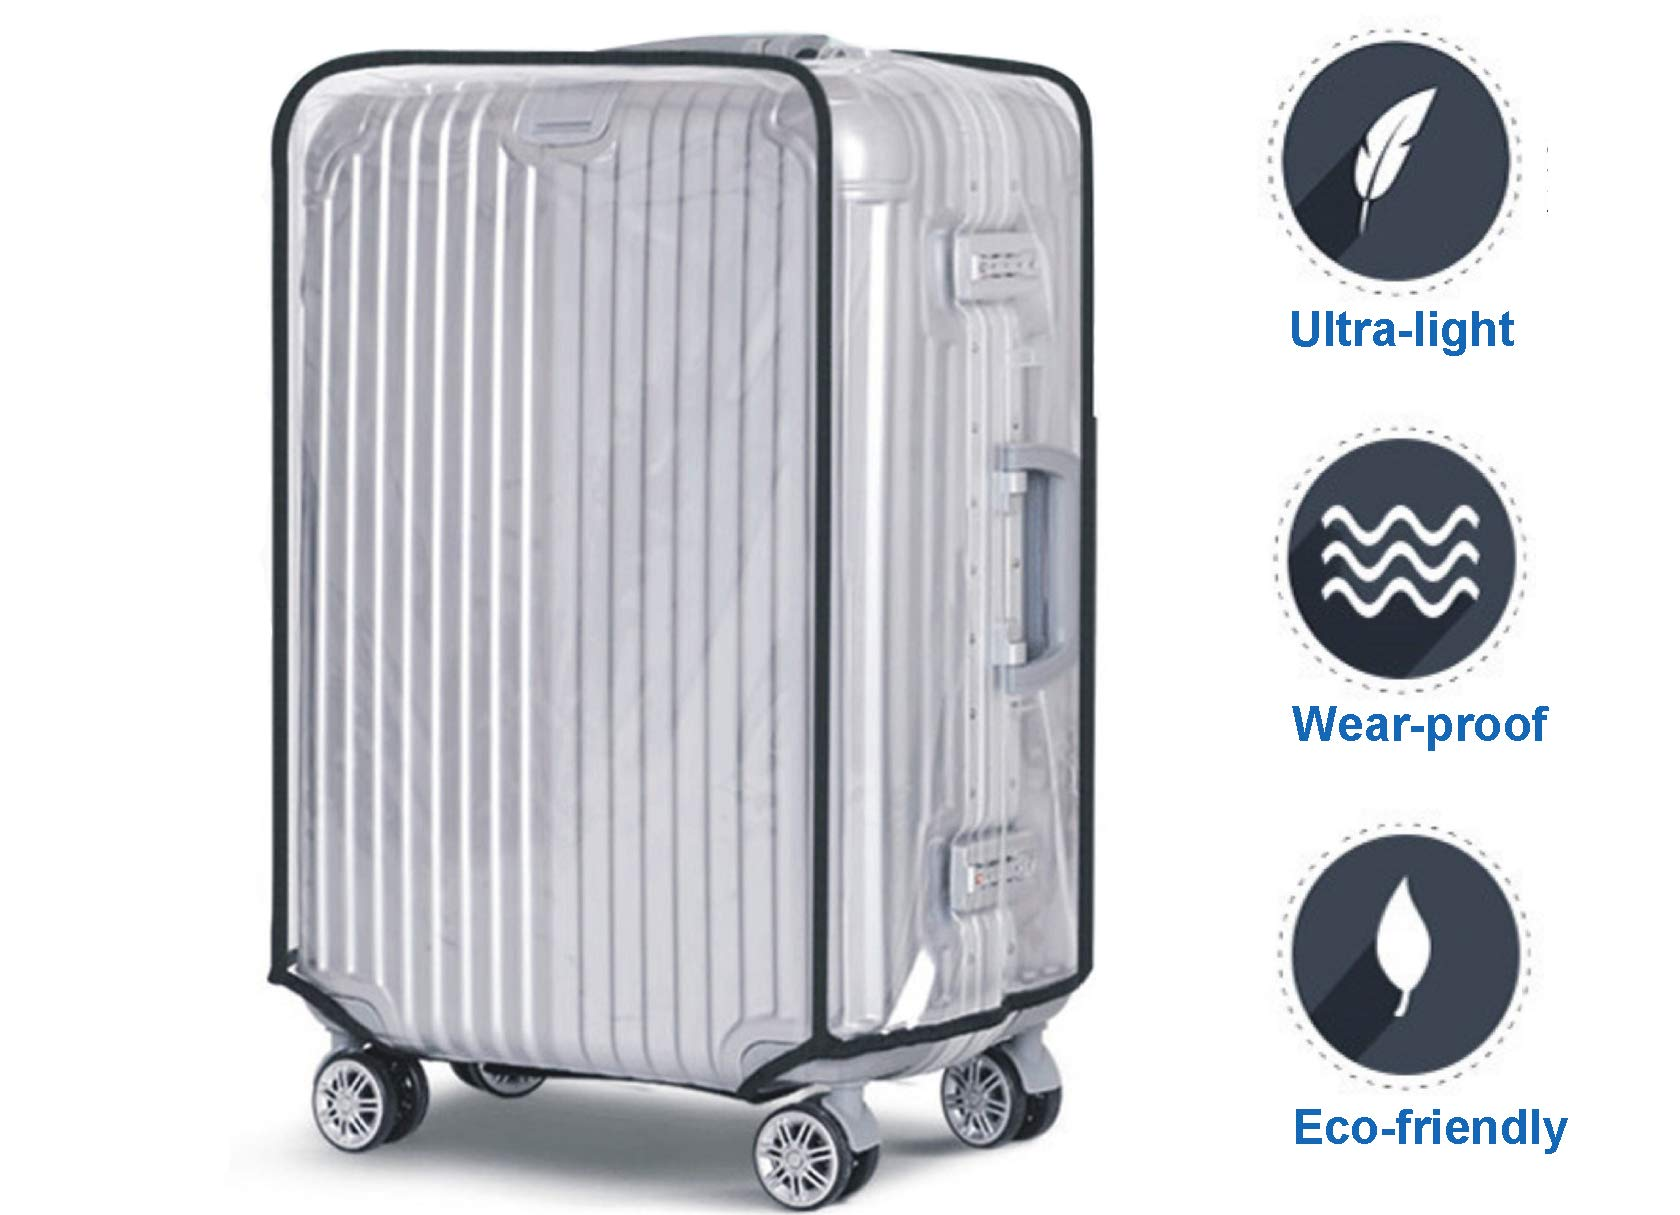 Luggage Cover, Clear PVC Luggage Suitcase Cover Travel Luggage Protector (22'') by HIGO MALL (Image #2)